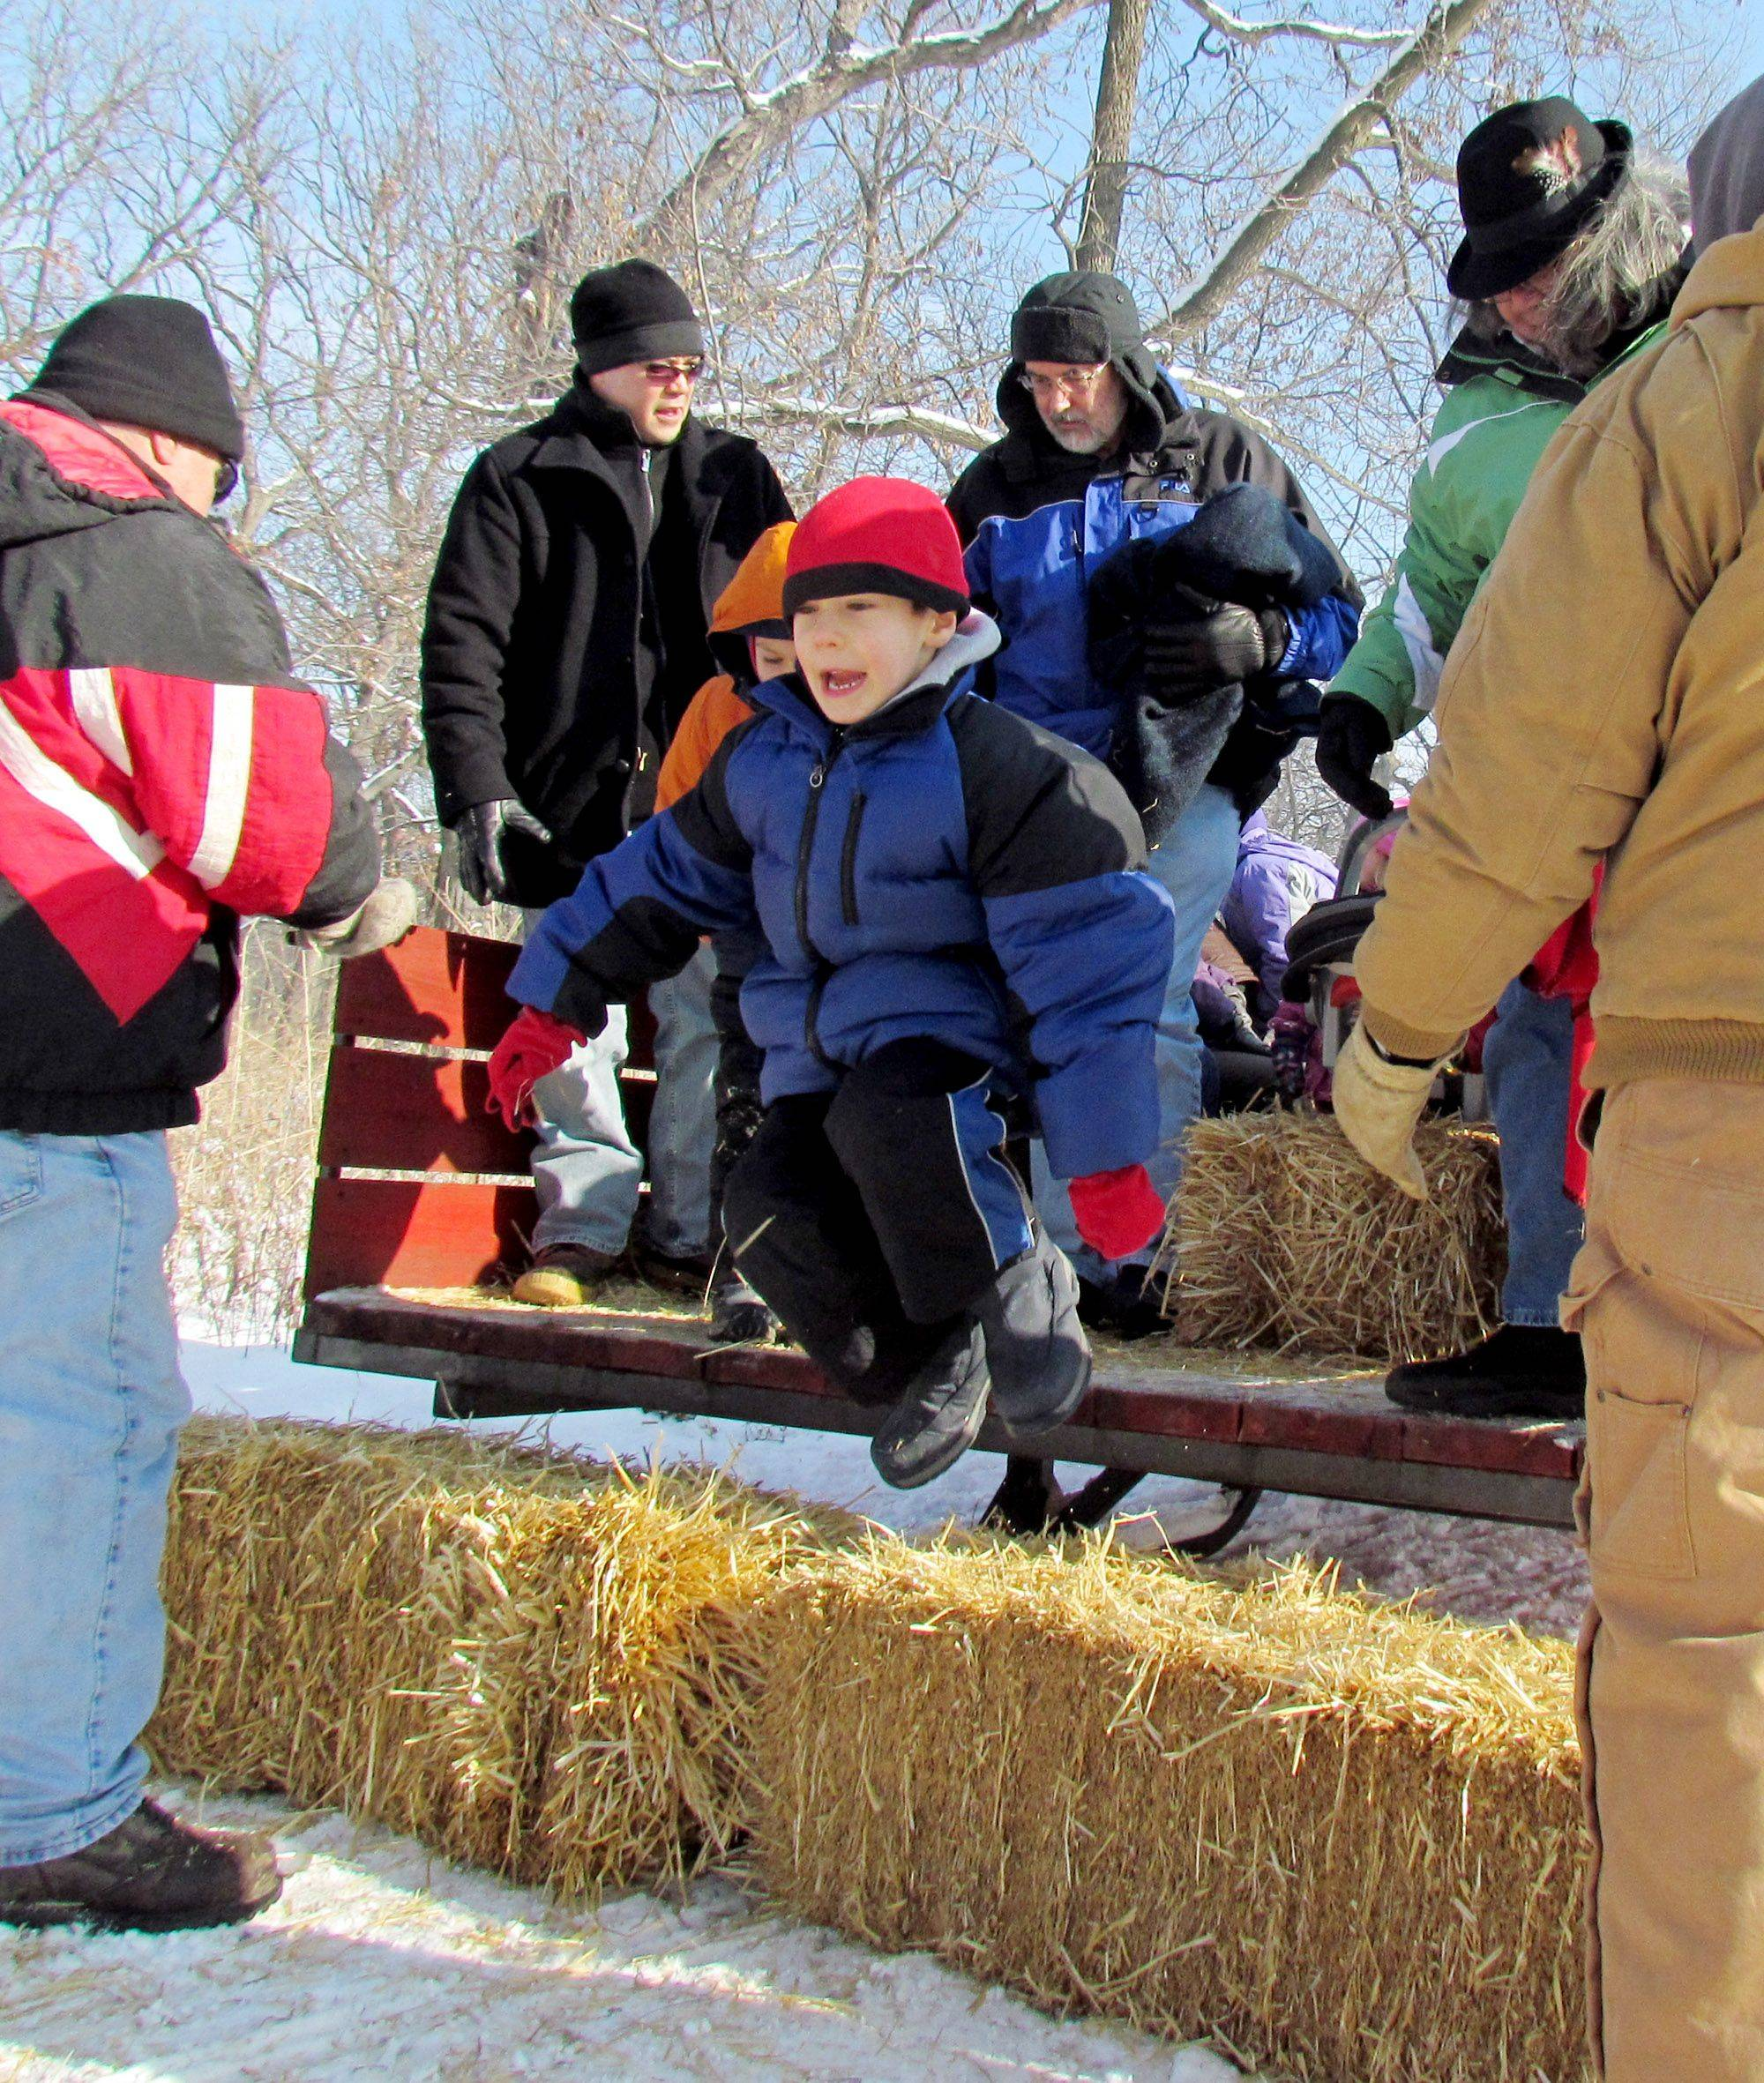 Caleb Walter of Wheaton jumps to the ground after his first horse-drawn sleigh ride Tuesday. He liked it, his father said.